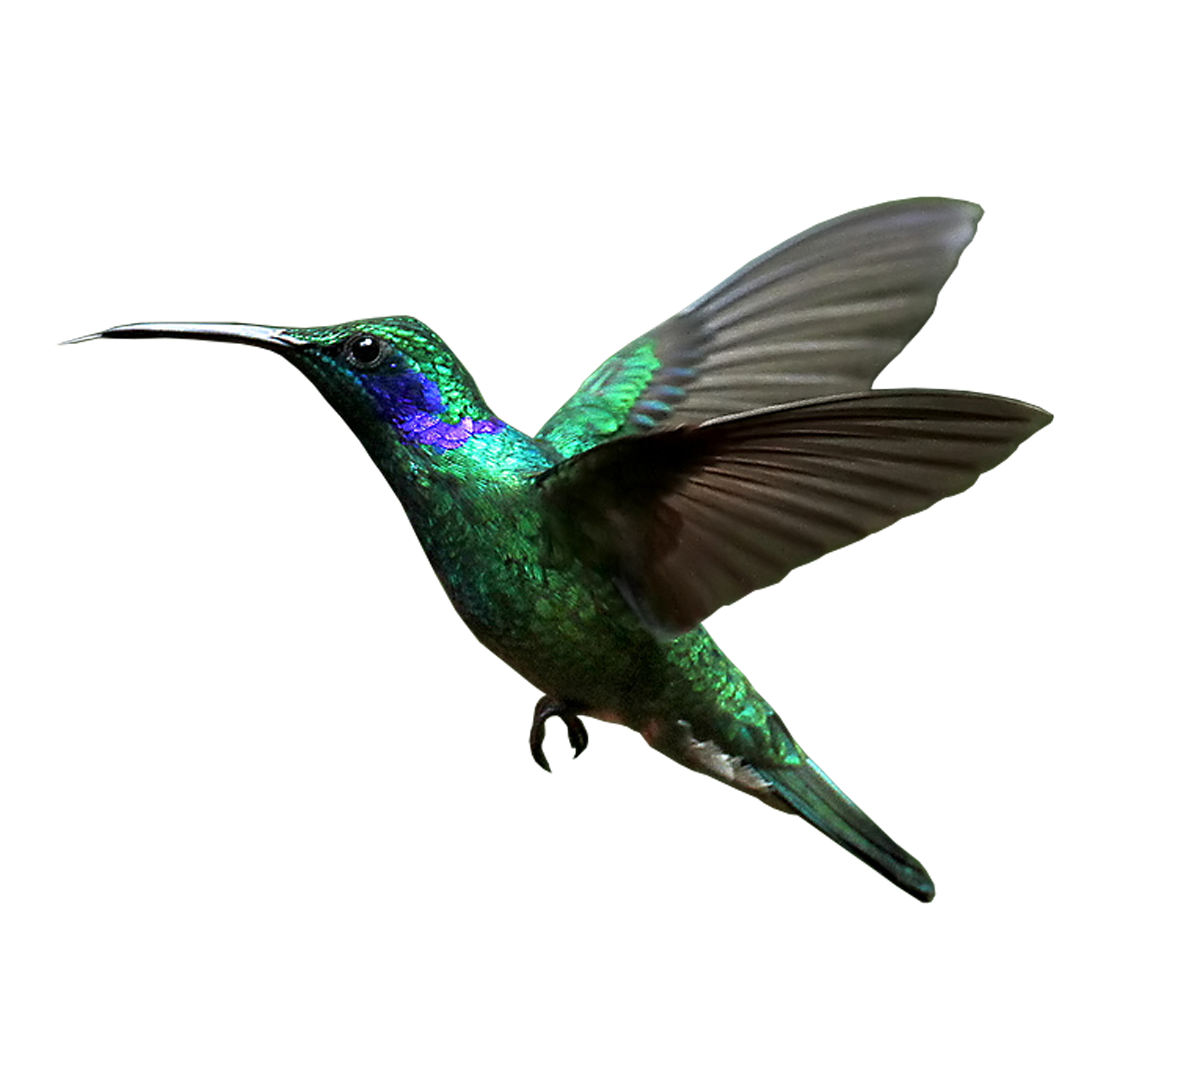 Hummingbird transparent. Background png mart